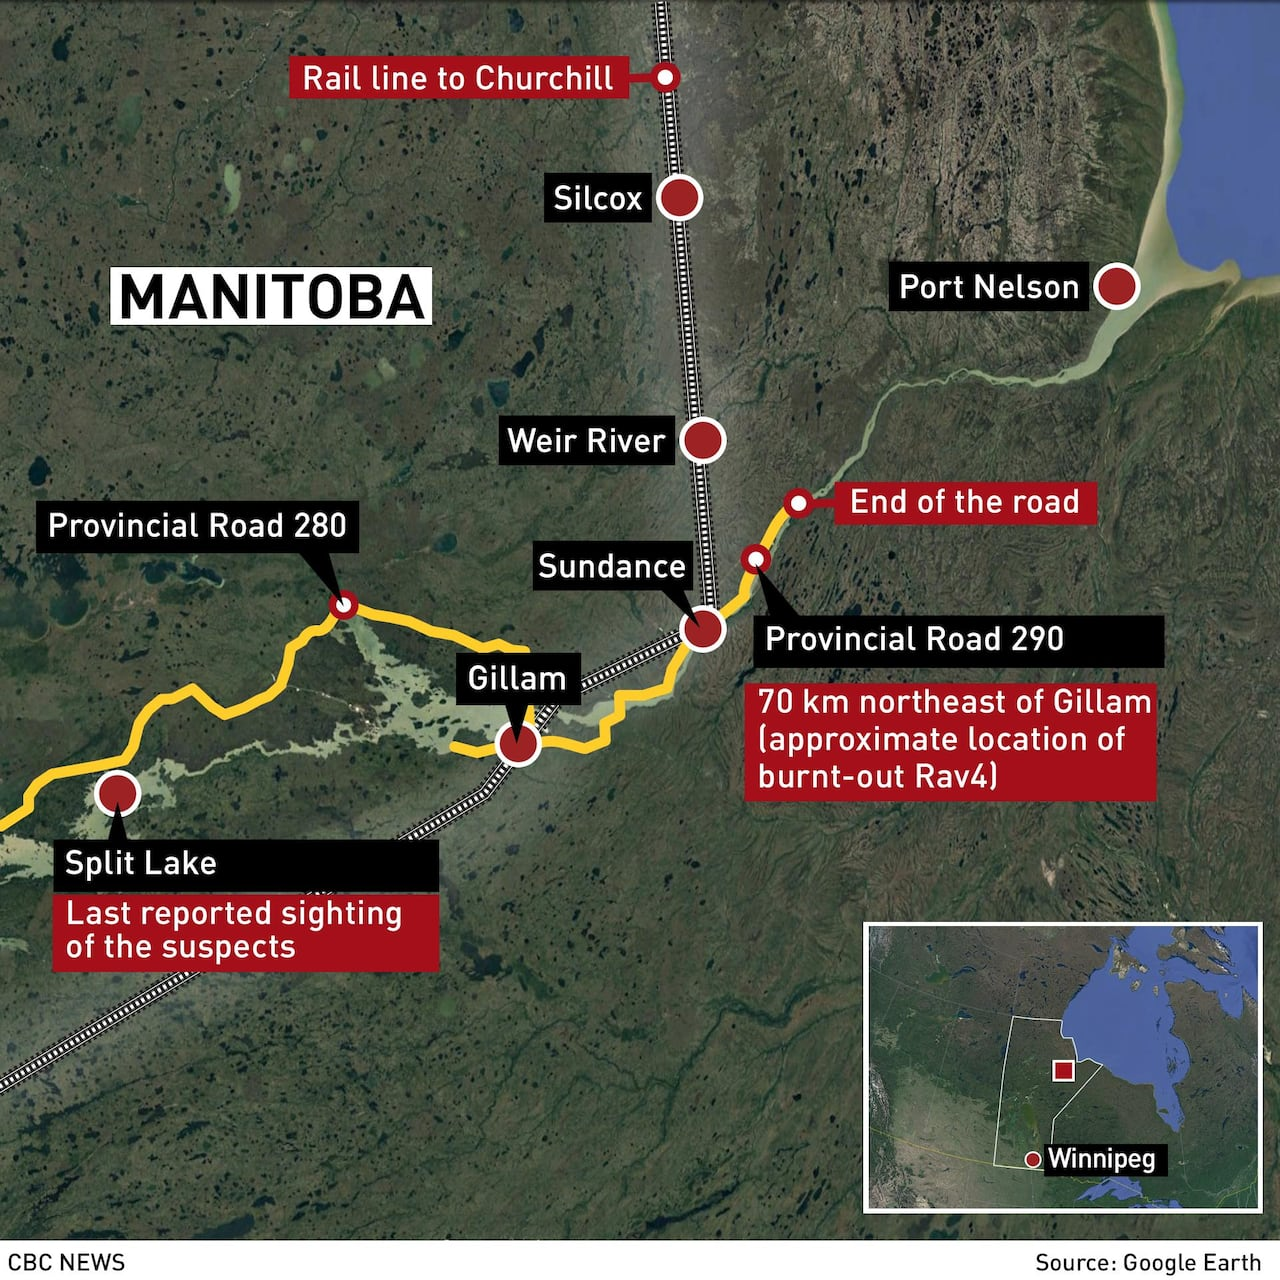 https://i.cbc.ca/1.5225821.1564603440!/fileImage/httpImage/search-area-map